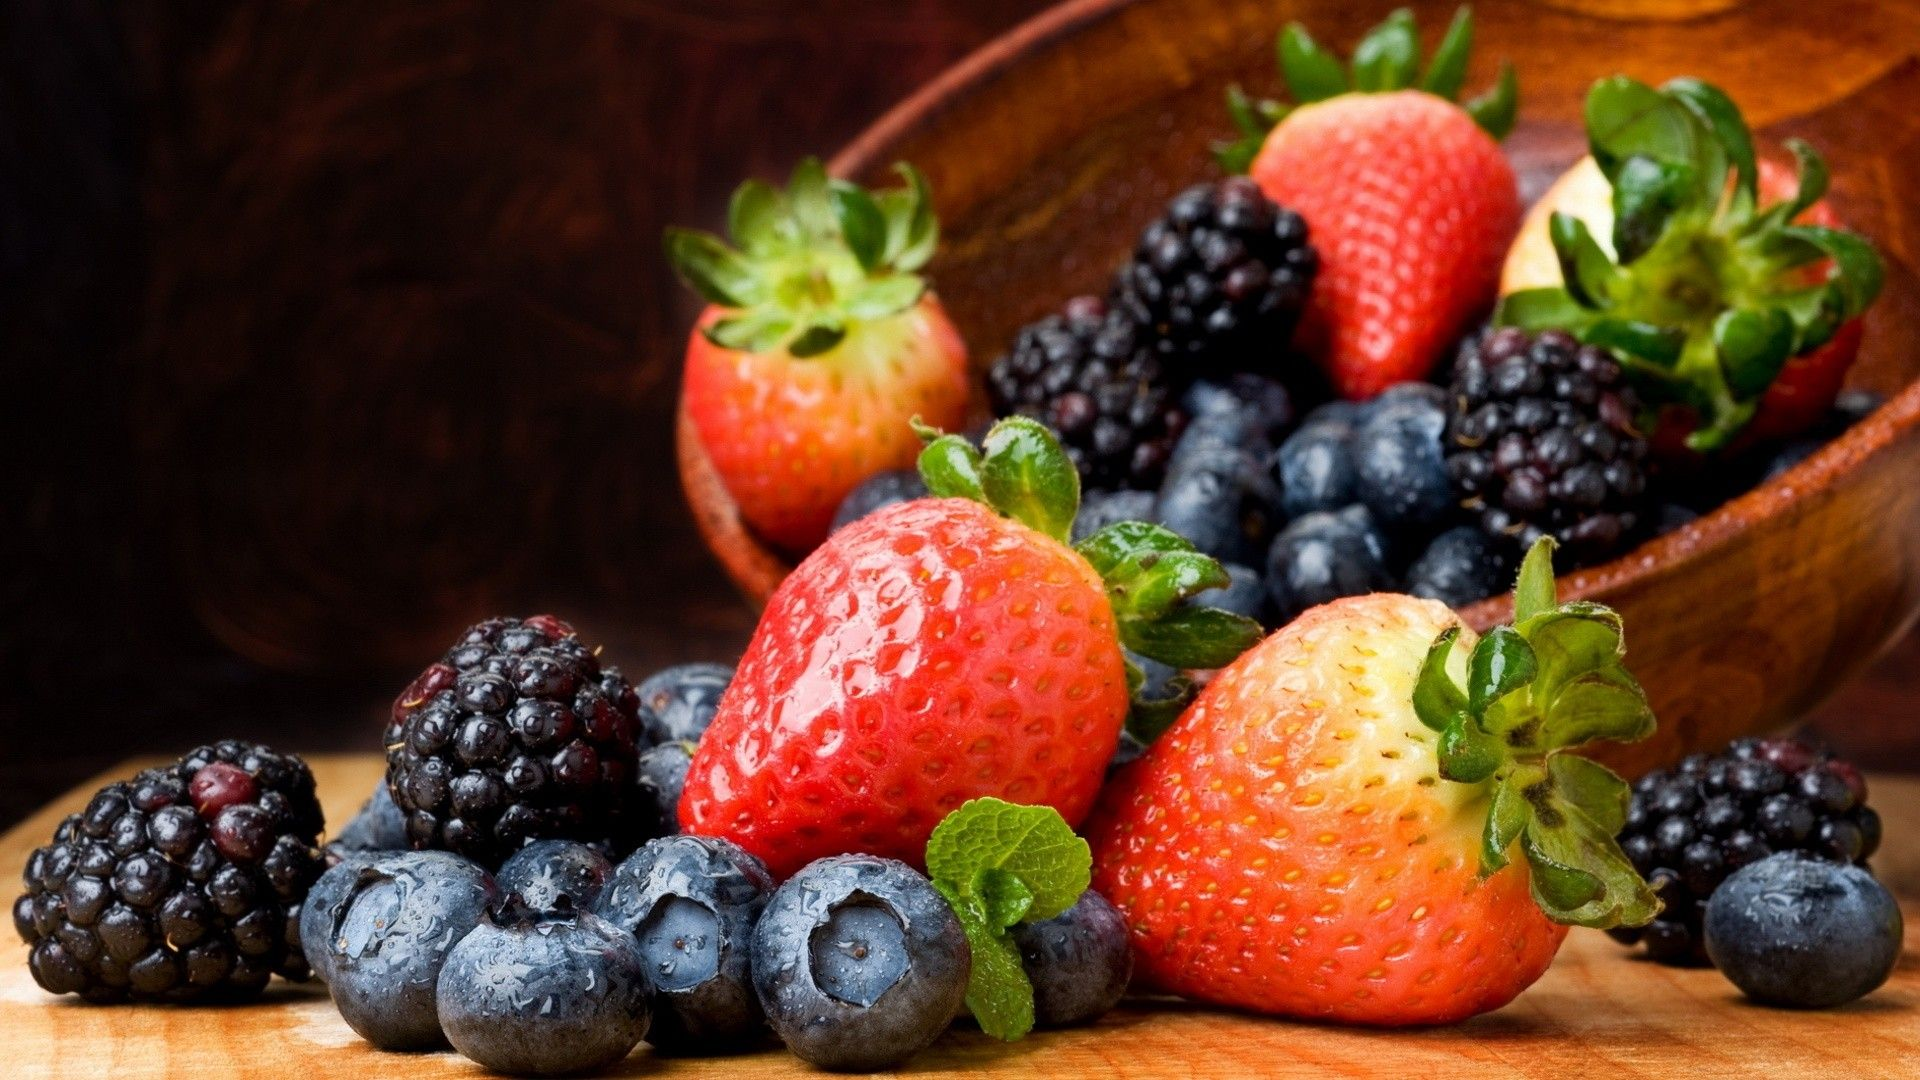 Fruit Blackberry Strawberries Blueberries Hd Wallpaper